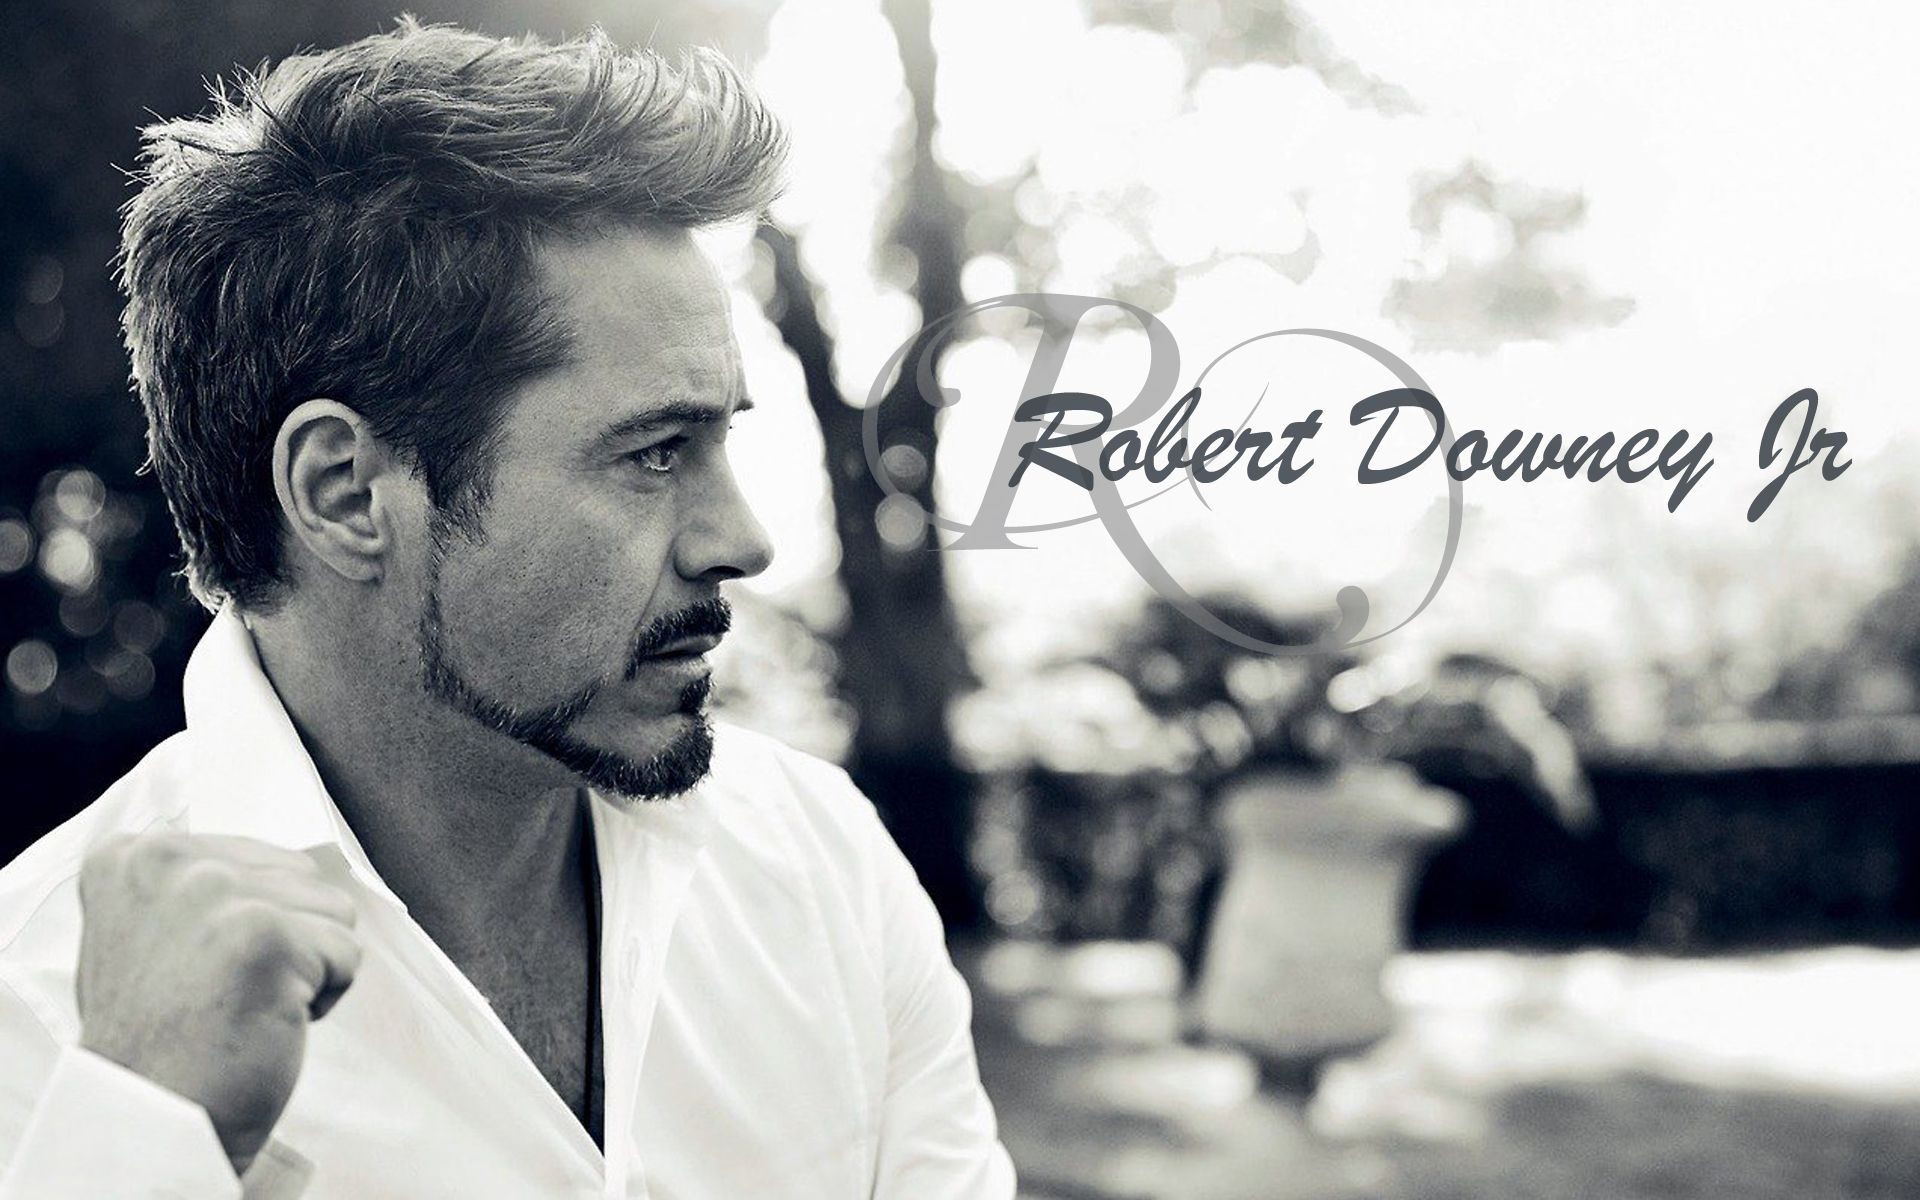 Free hd wallpaper robert downey jr - Robert Downey Jr Hd Images Get Free Top Quality Robert Downey Jr Hd Images For